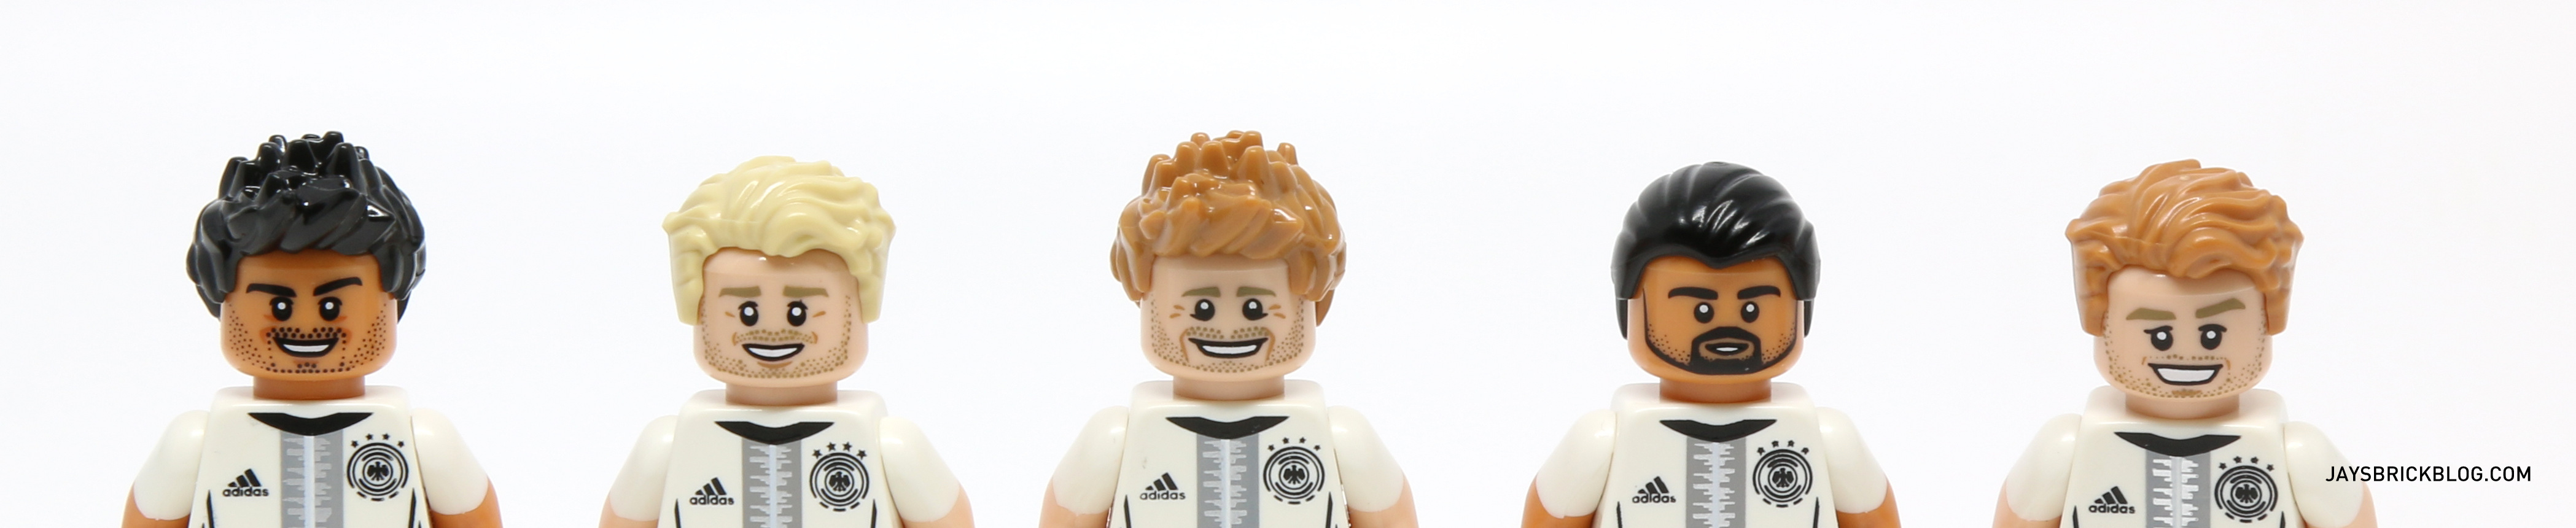 Review Lego German Football Team Minifigures